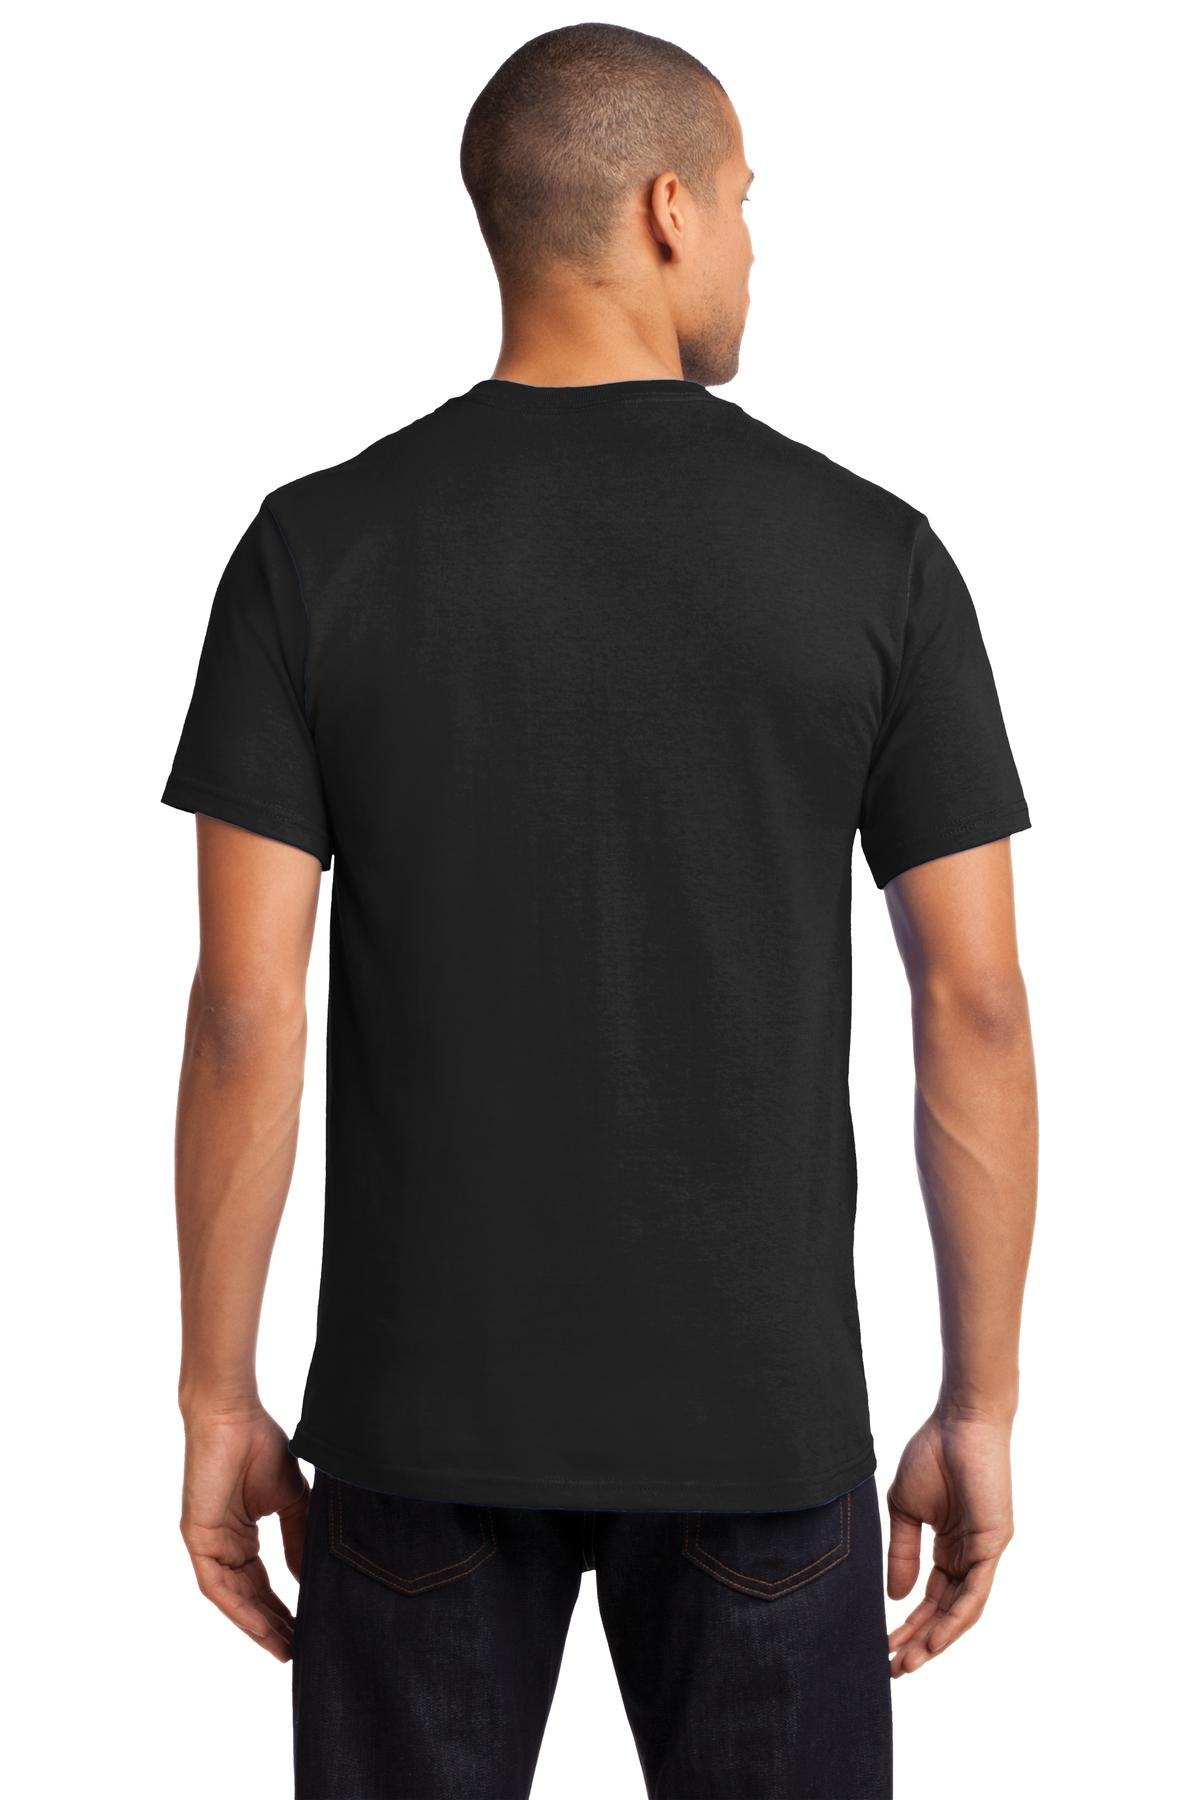 Port-amp-Company-Tall-Essential-TShirt-with-Pocket-PC61PT-Size-LT-4XLT thumbnail 18